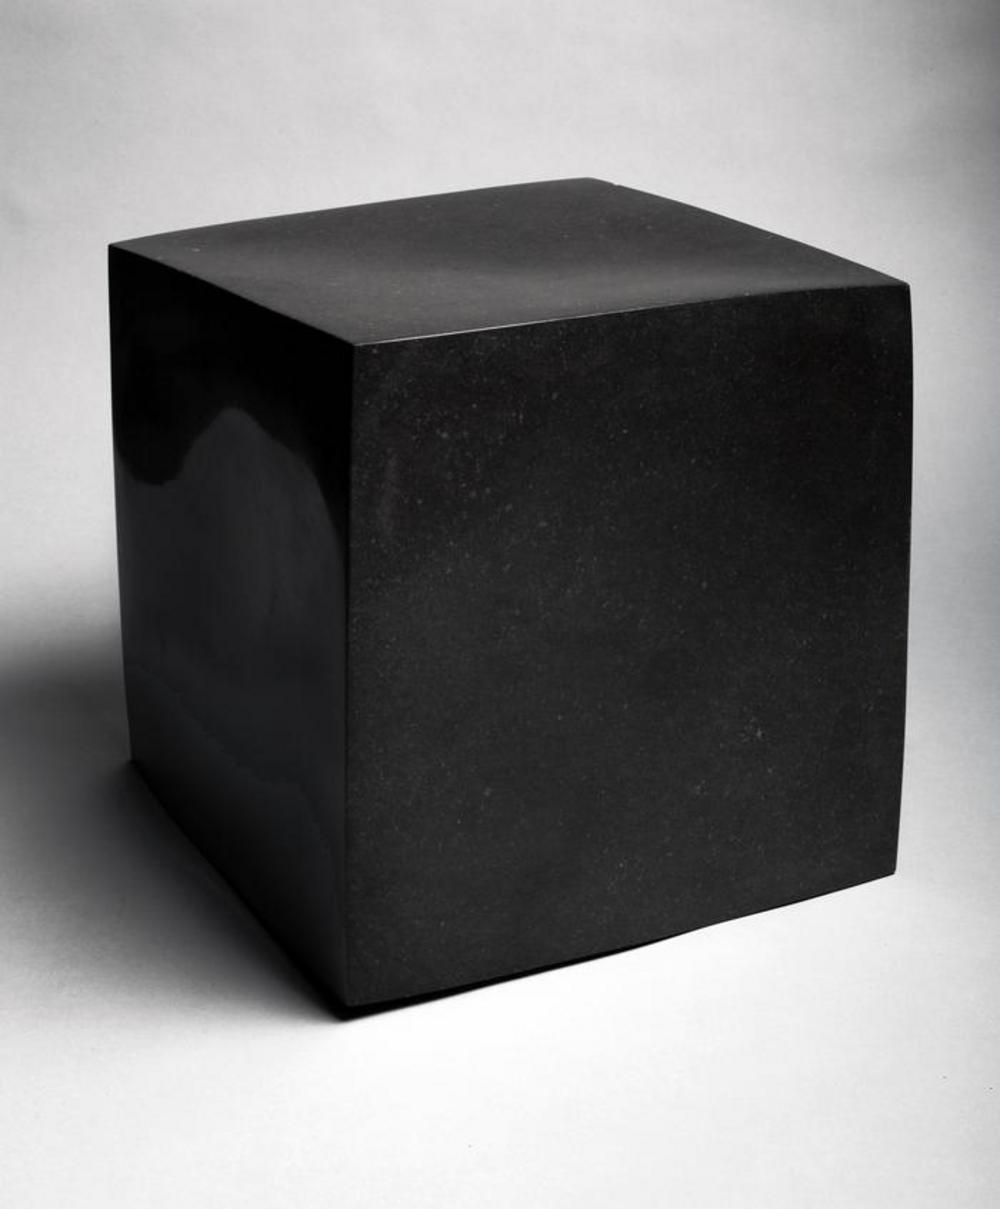 The Life of a Cube, image 1